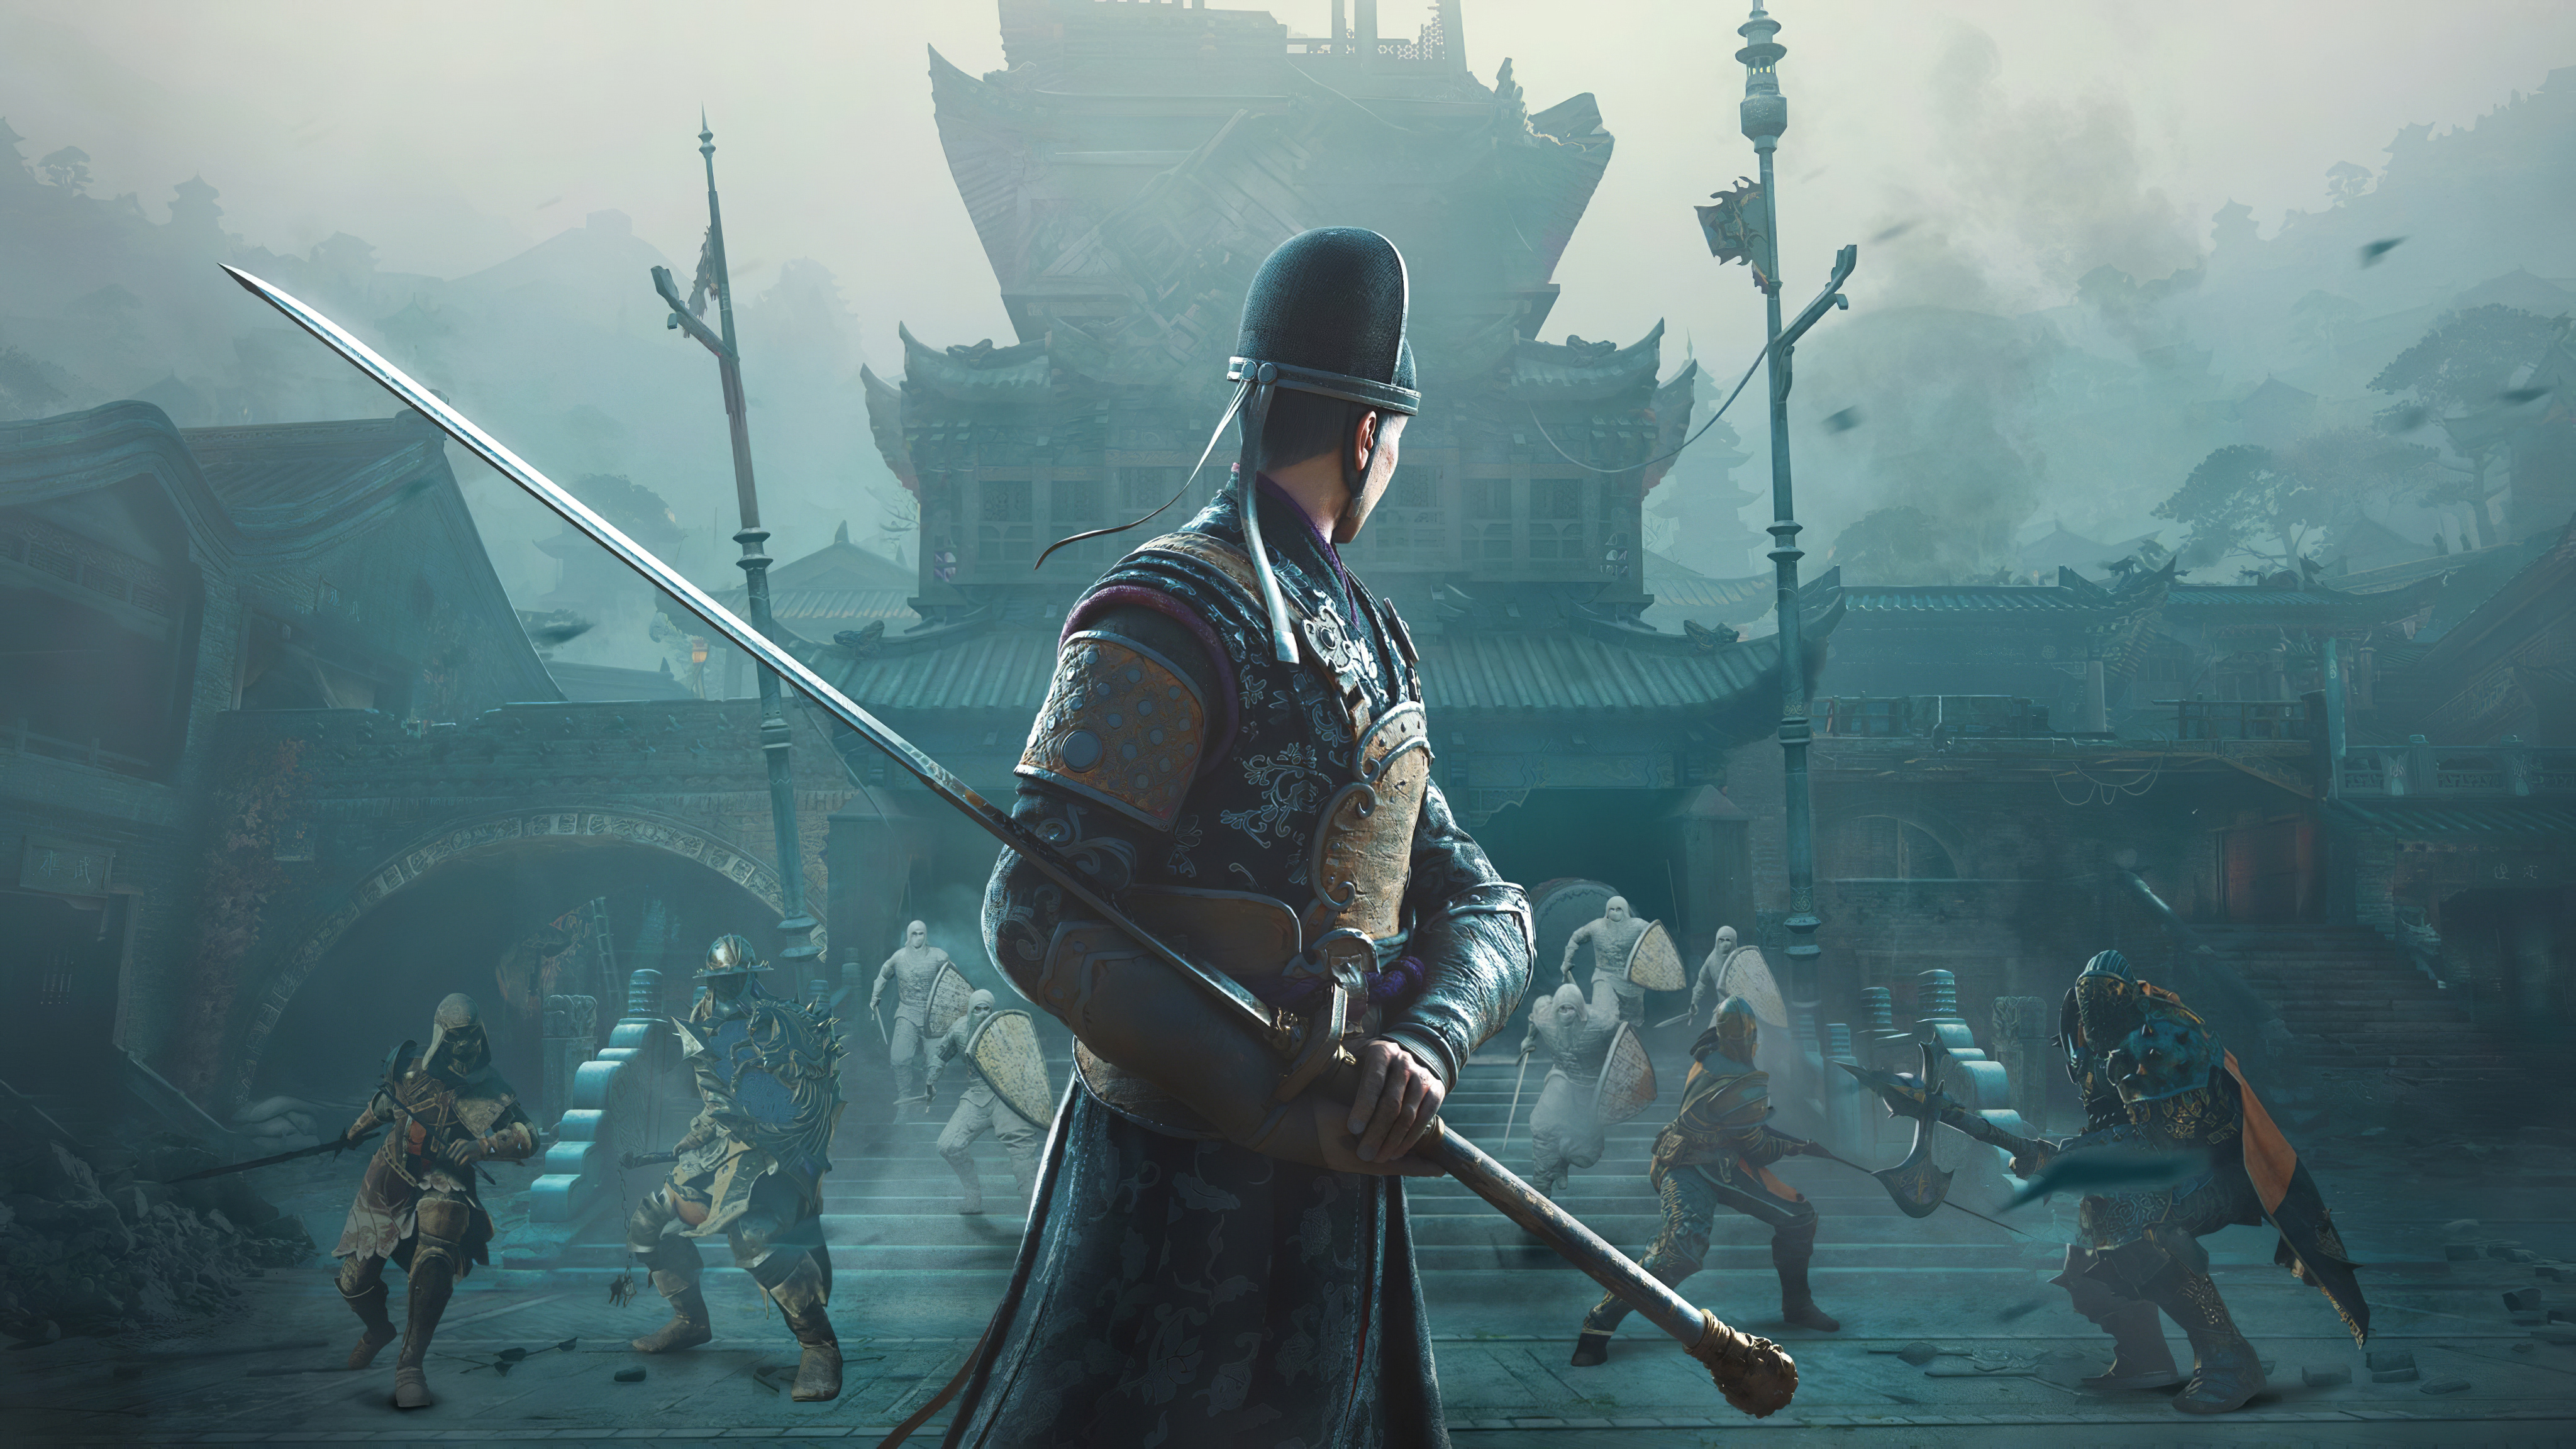 for honor the zhanhu gambit 1589581408 - For Honor The Zhanhu Gambit - For Honor The Zhanhu Gambit wallpapers, For Honor The Zhanhu Gambit 4k wallpapers